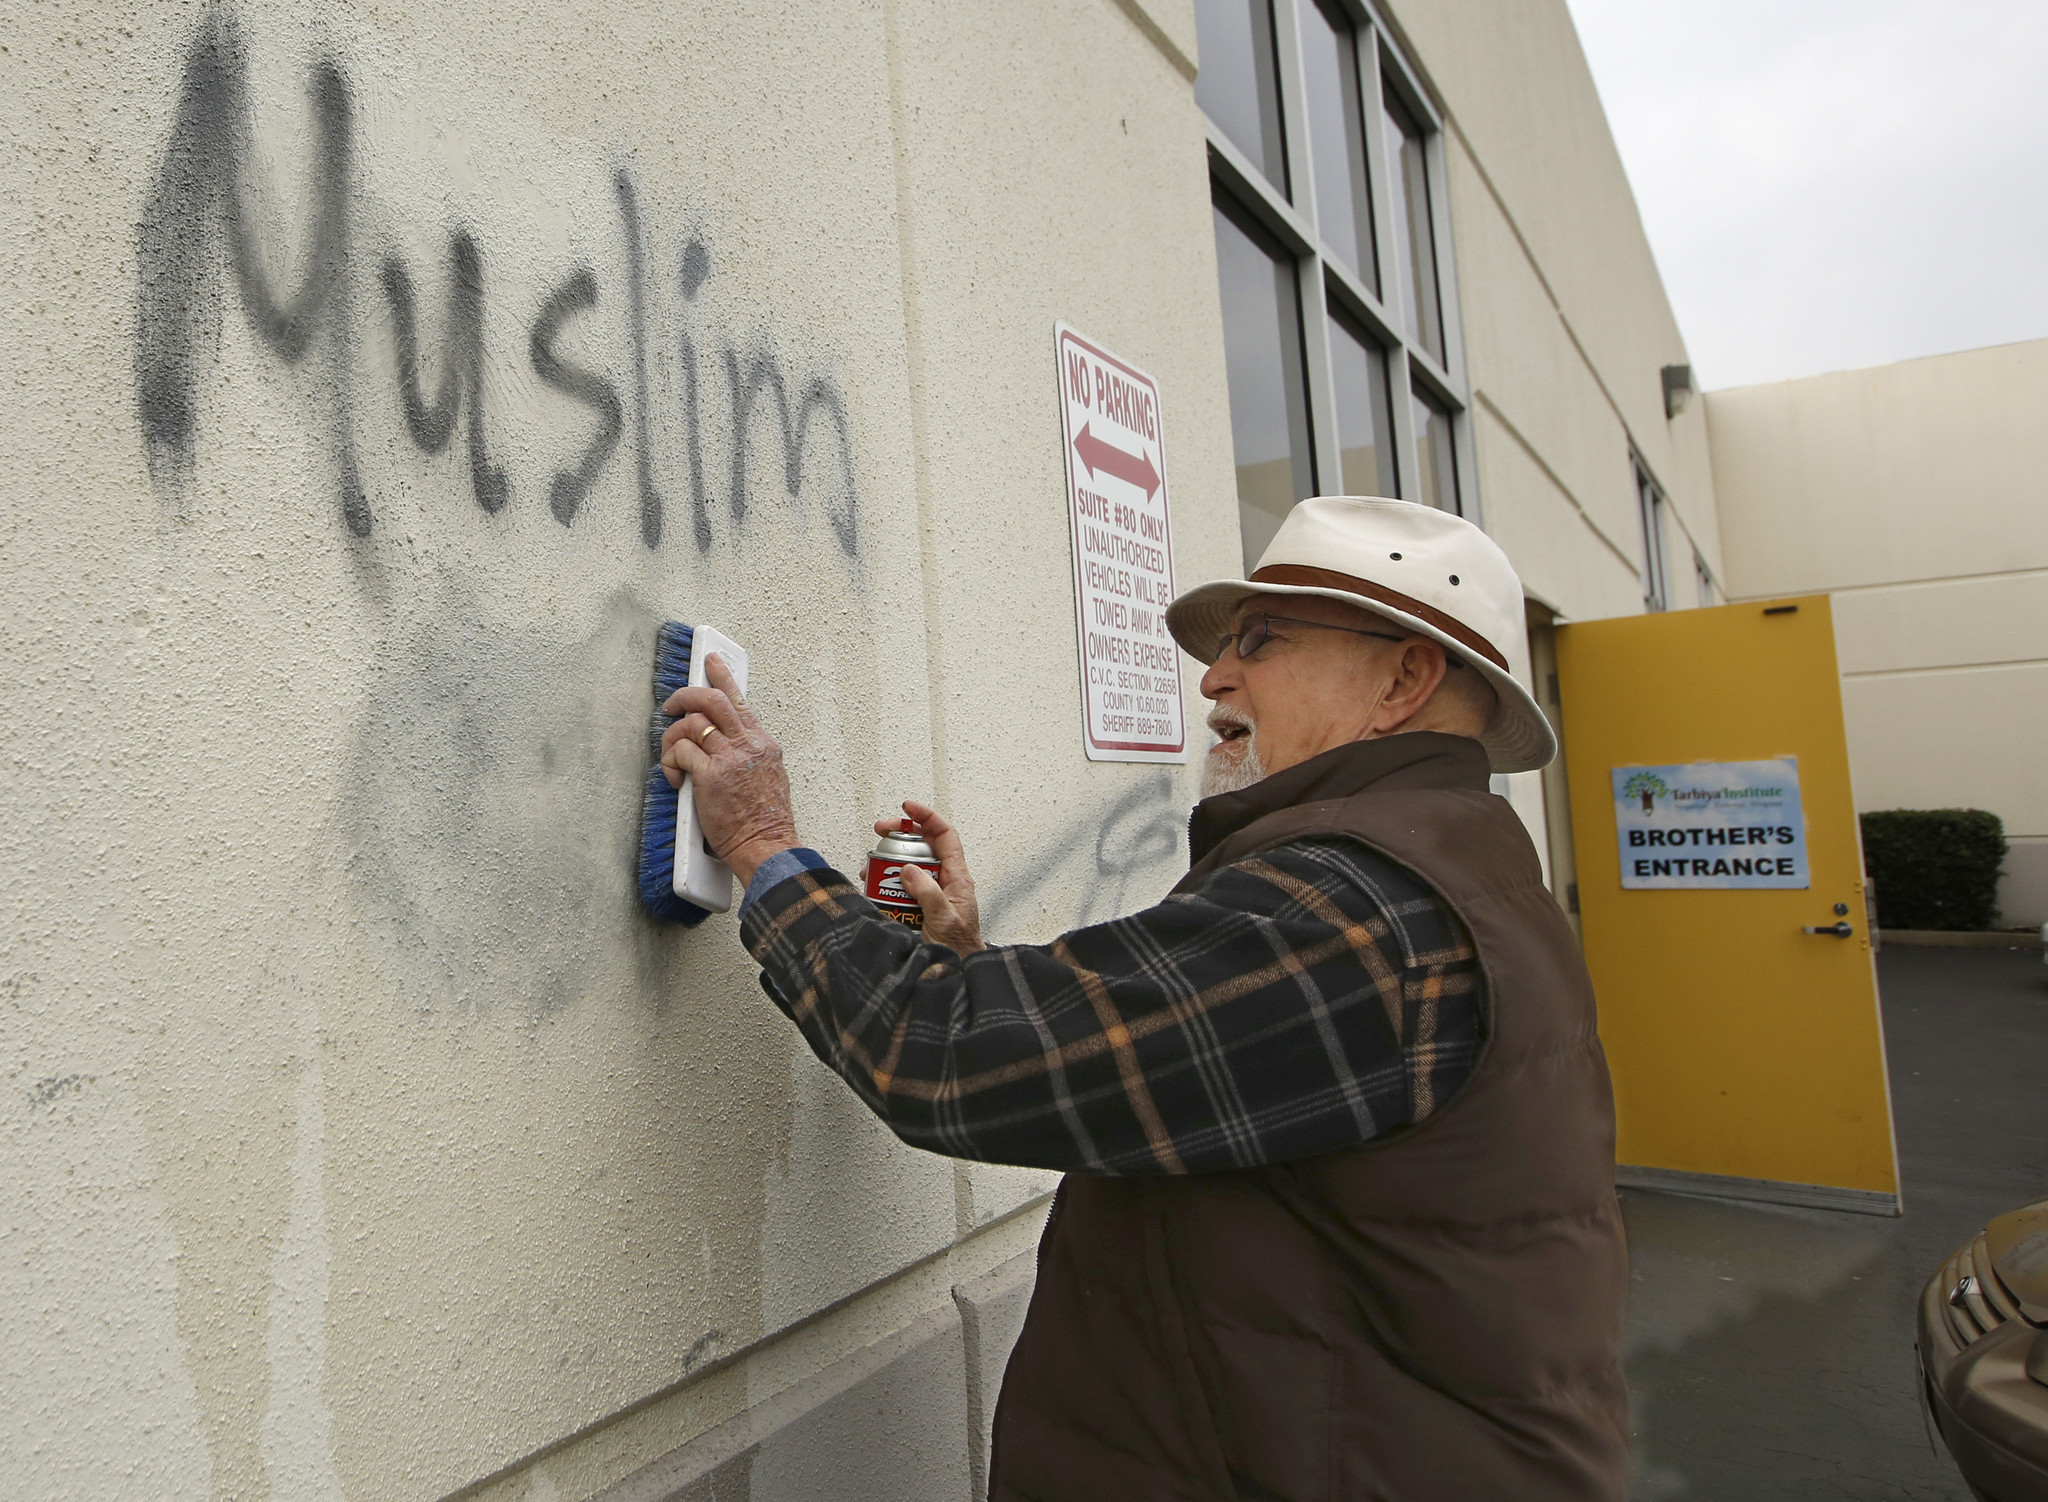 Hate Crimes in California Jump 11 Percent